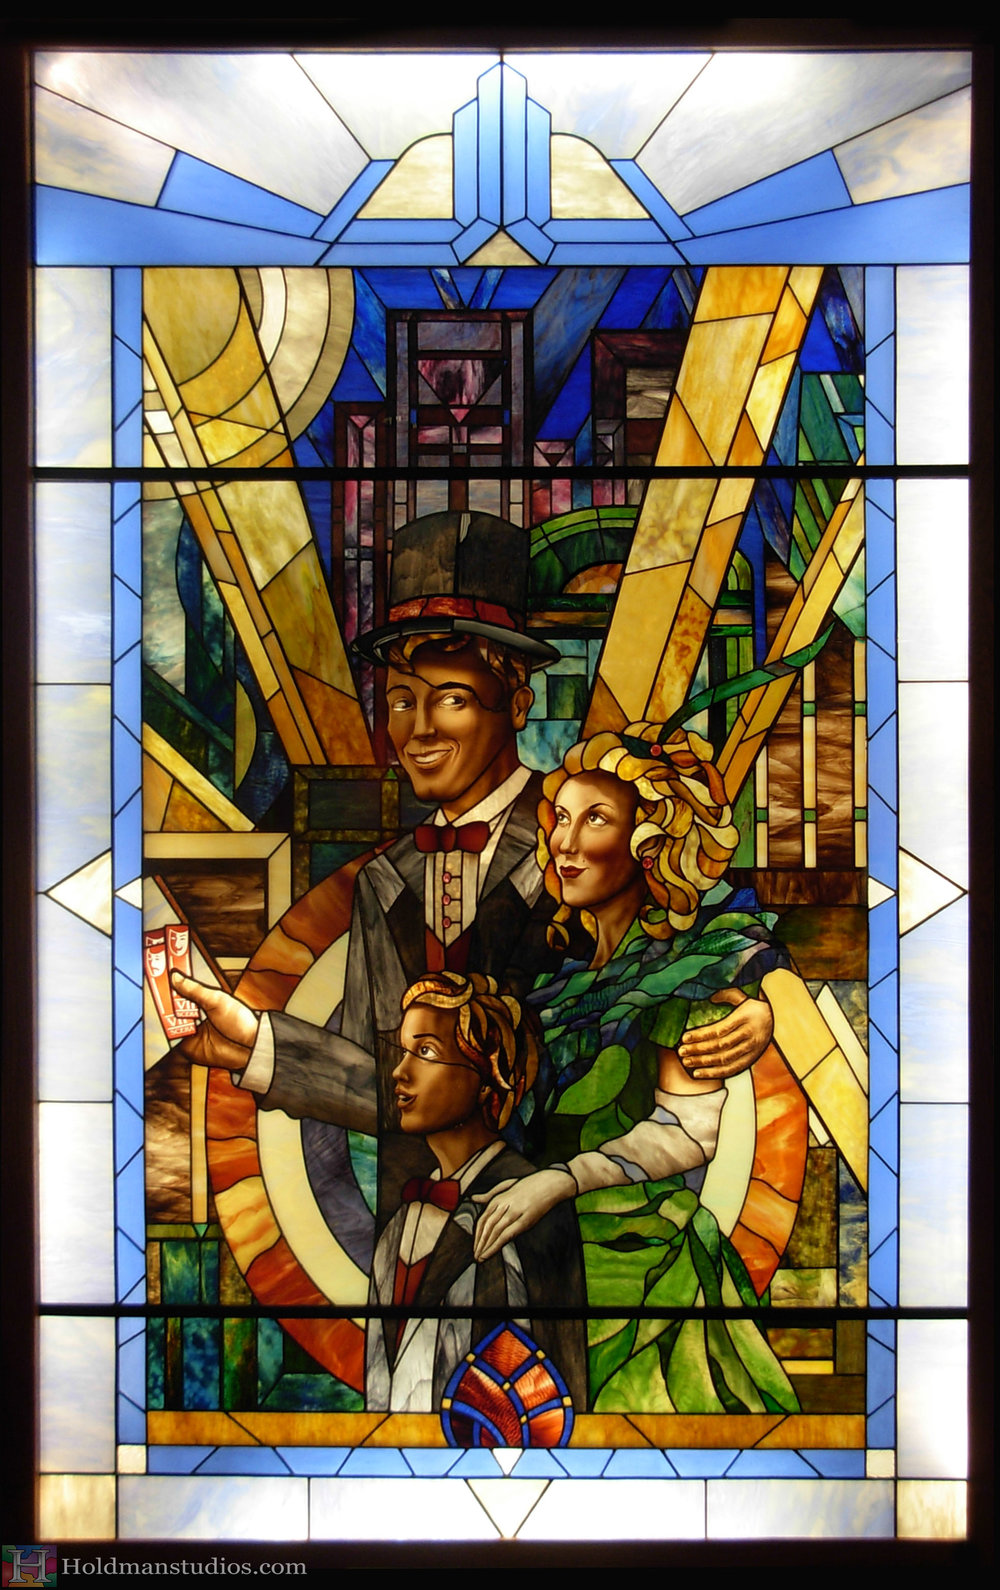 Holdman-studios-stained-art-glass-window-scera-family-theater-art-deco.jpg